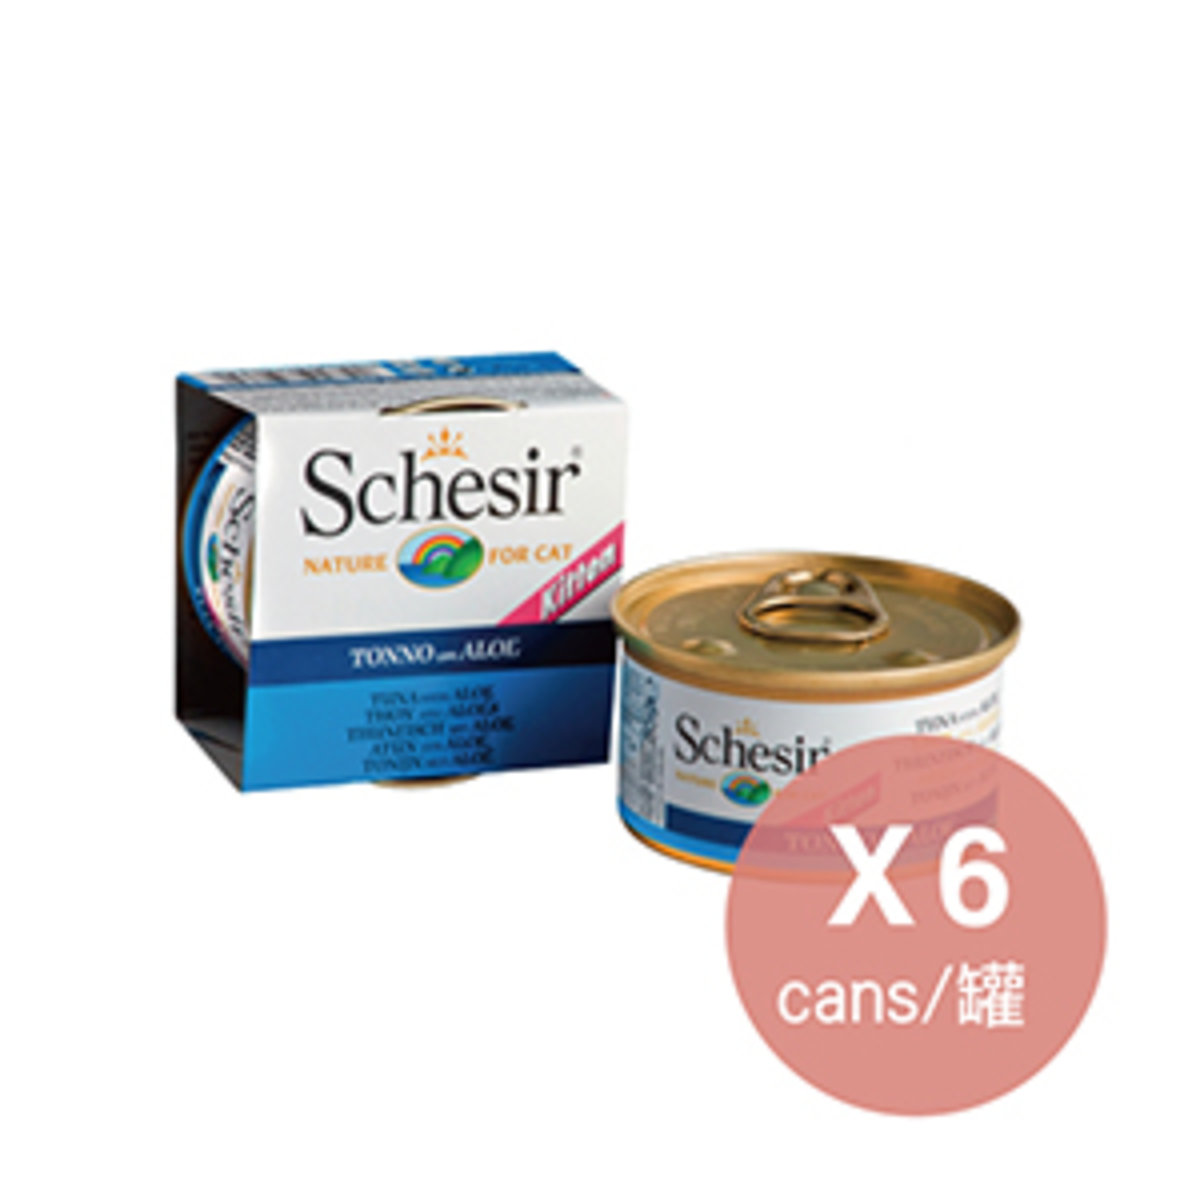 C184 Schesir Tuna with aloe KITTEN Jelly Natural 85g x6